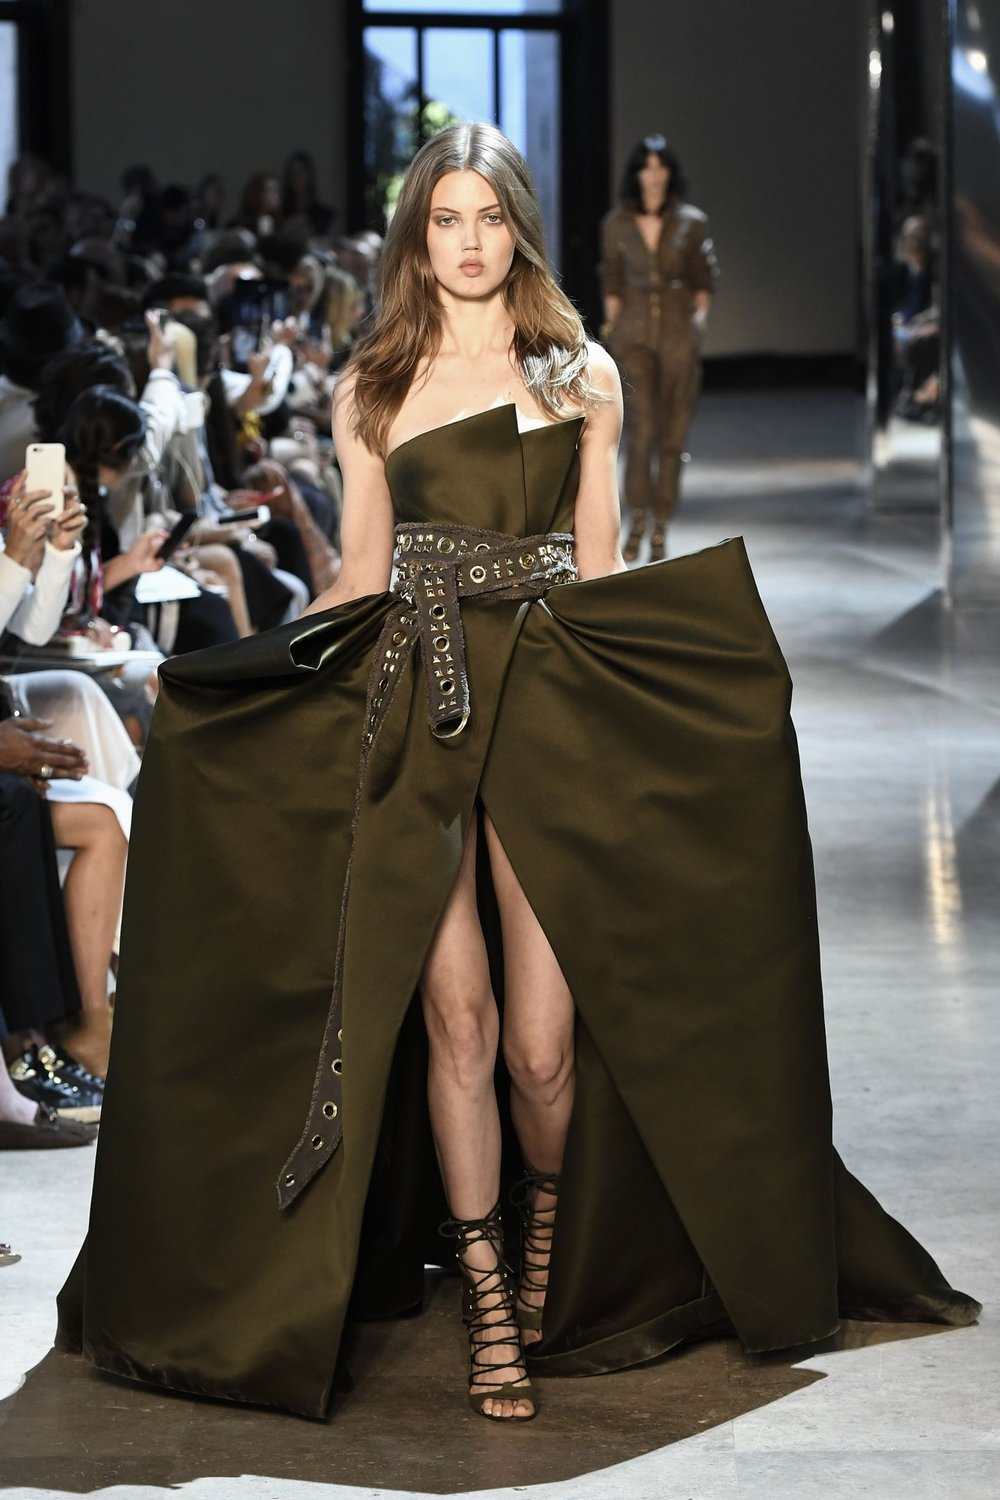 A model wearing this Alexandre Vauthier A/W 2016 creation might not be able to pass through a door easily but once she does she will certainly make an impression.